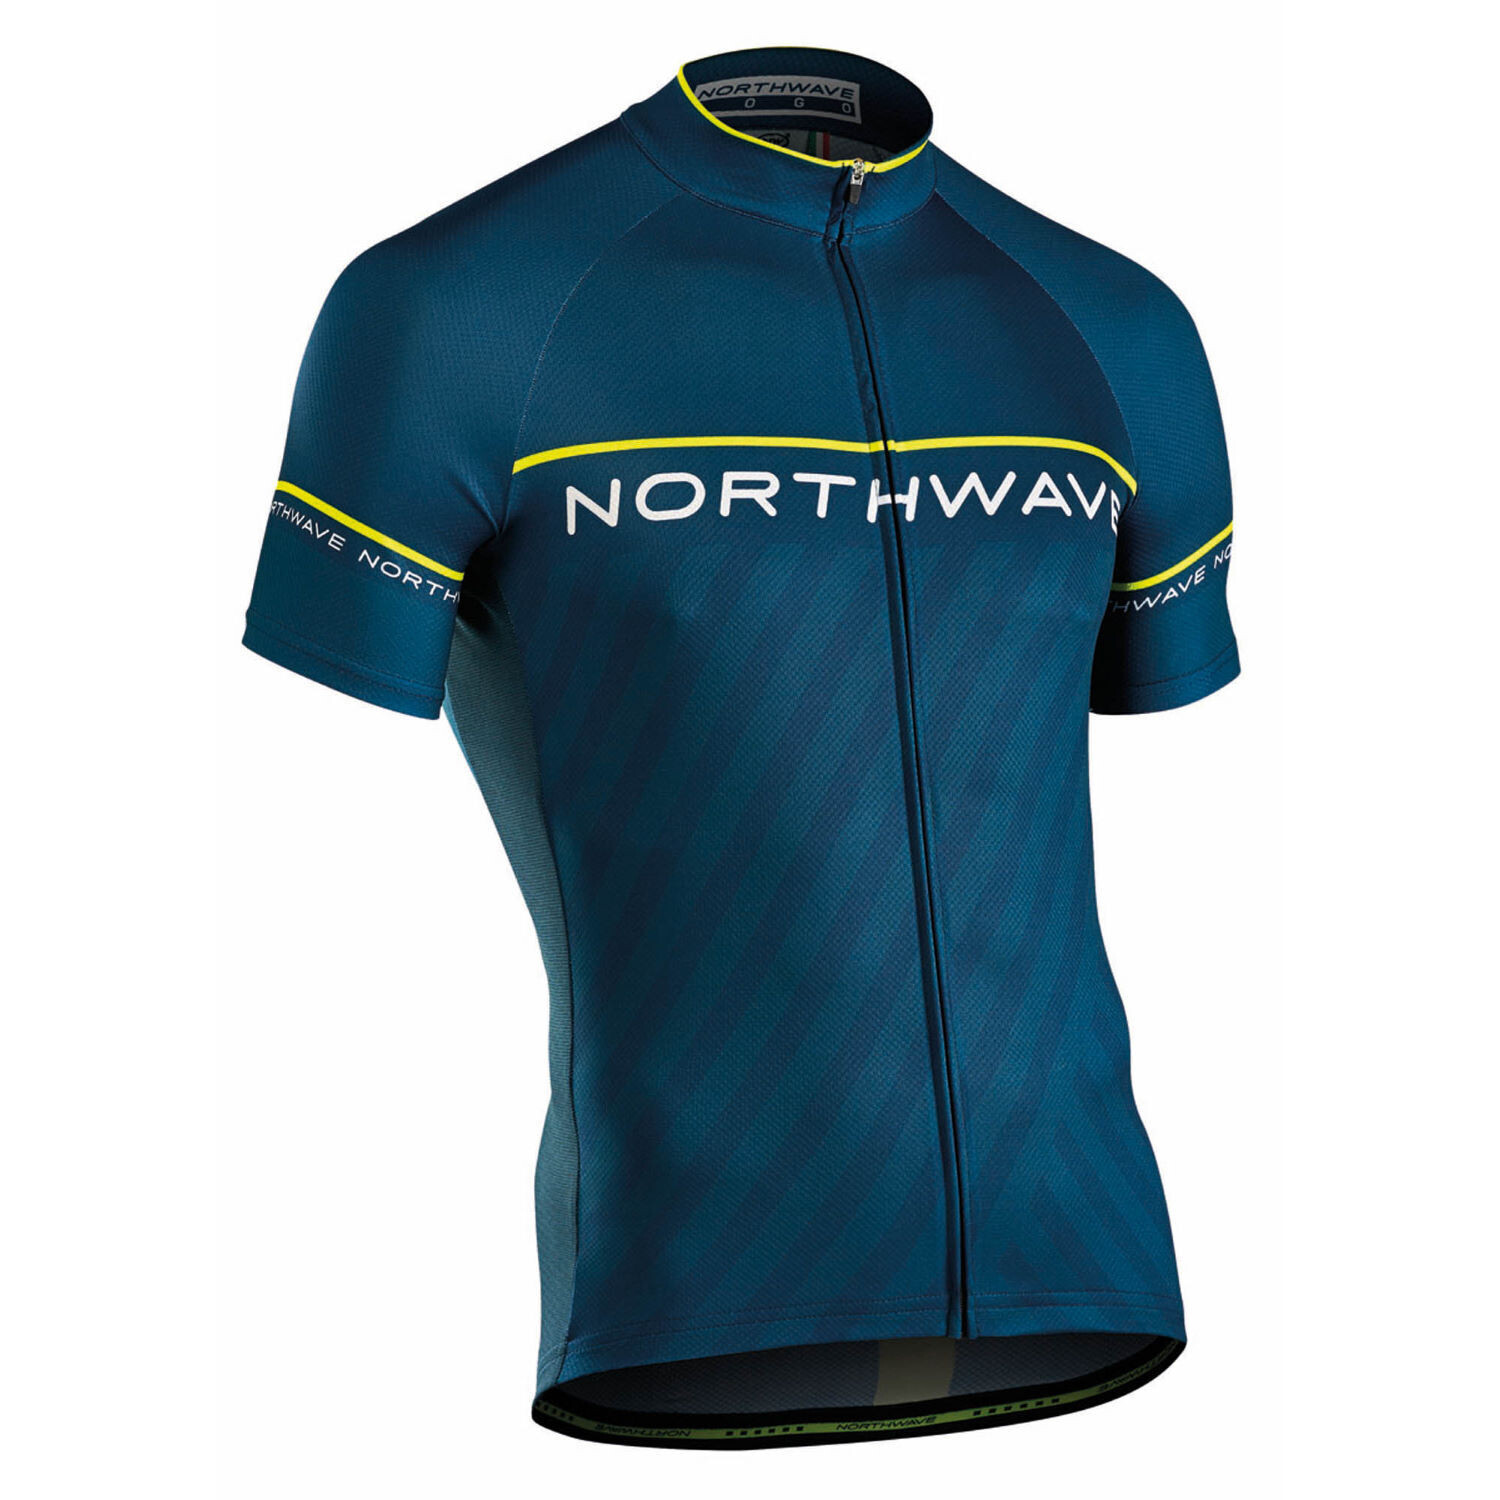 NorthWave - Jersey Logo 3 Blue Yellow Fluo